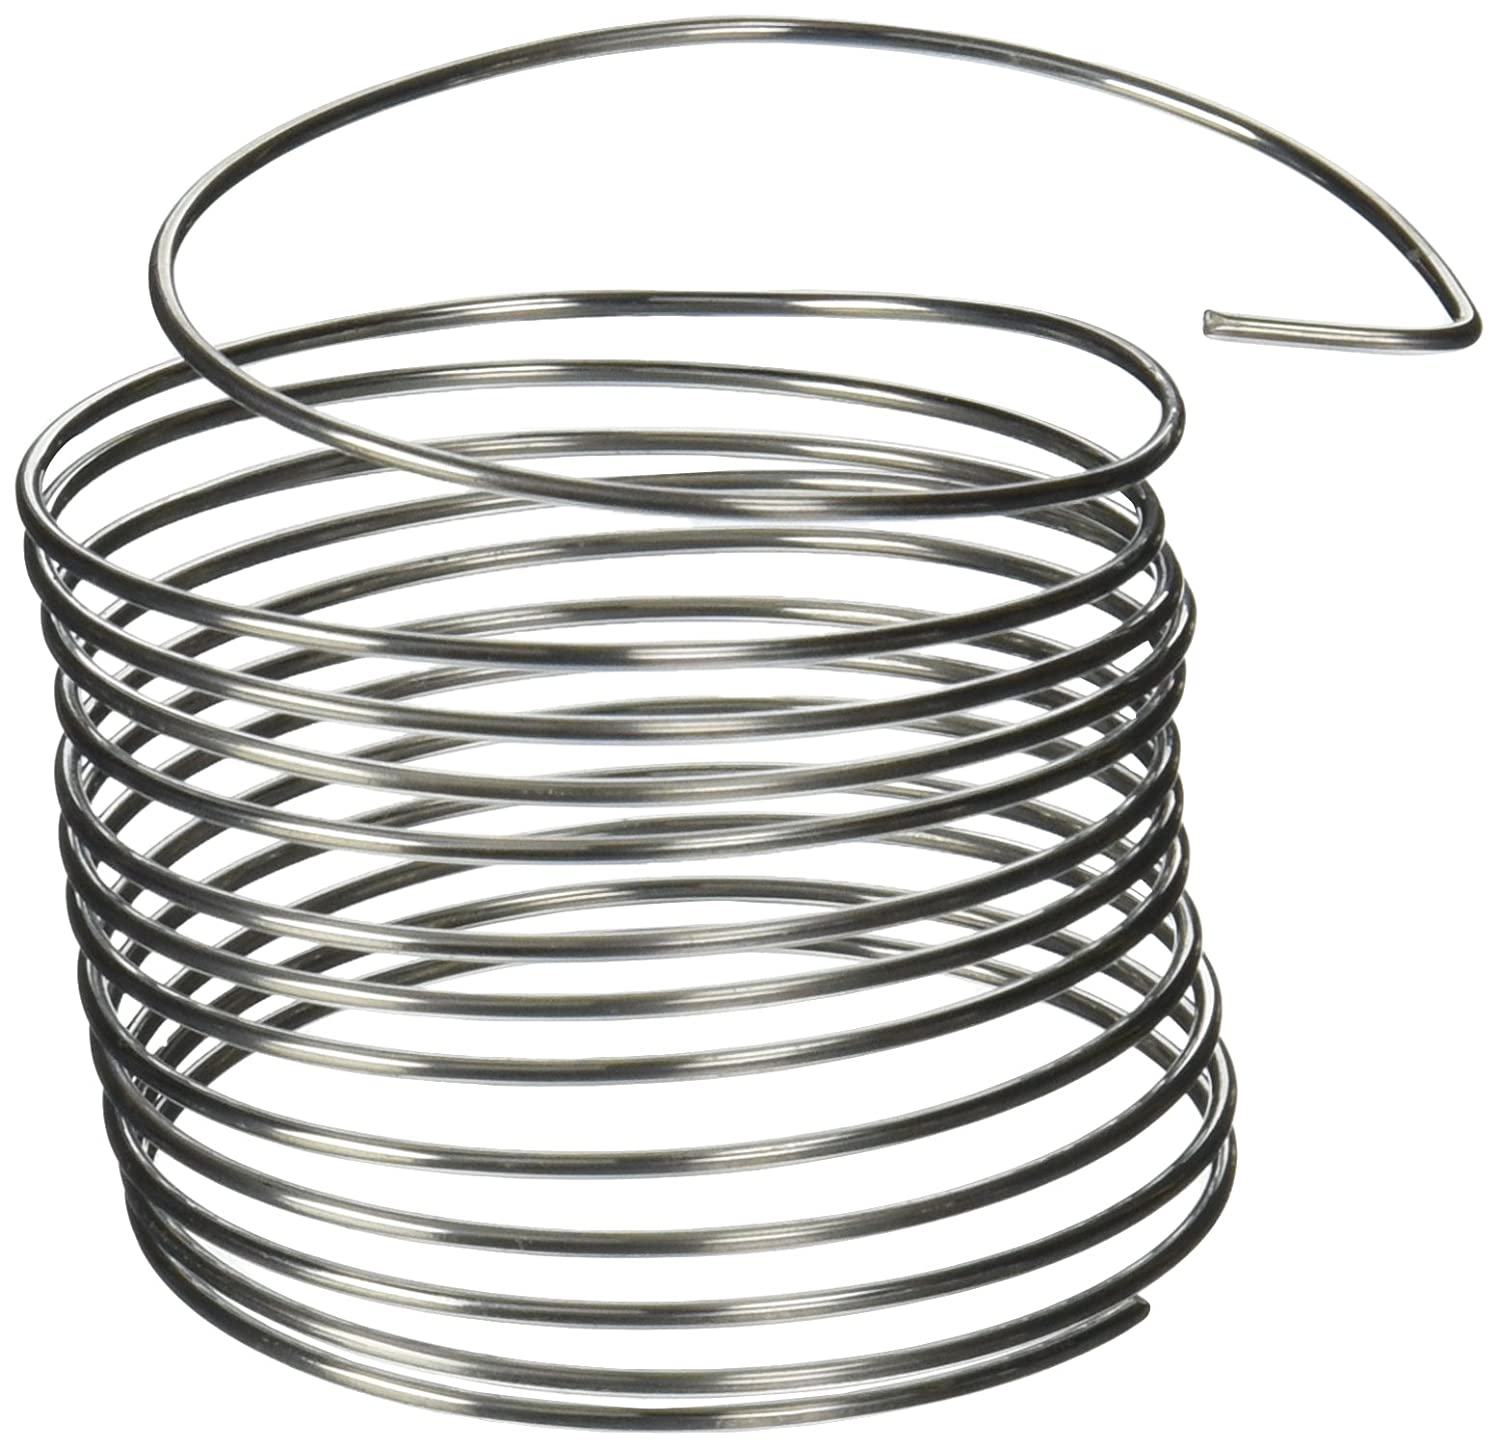 AMACO Wireform Armature Modeling Wire-1/16-Inch Diameter by, 8-Feet Coiled Soft Aluminum 50117E